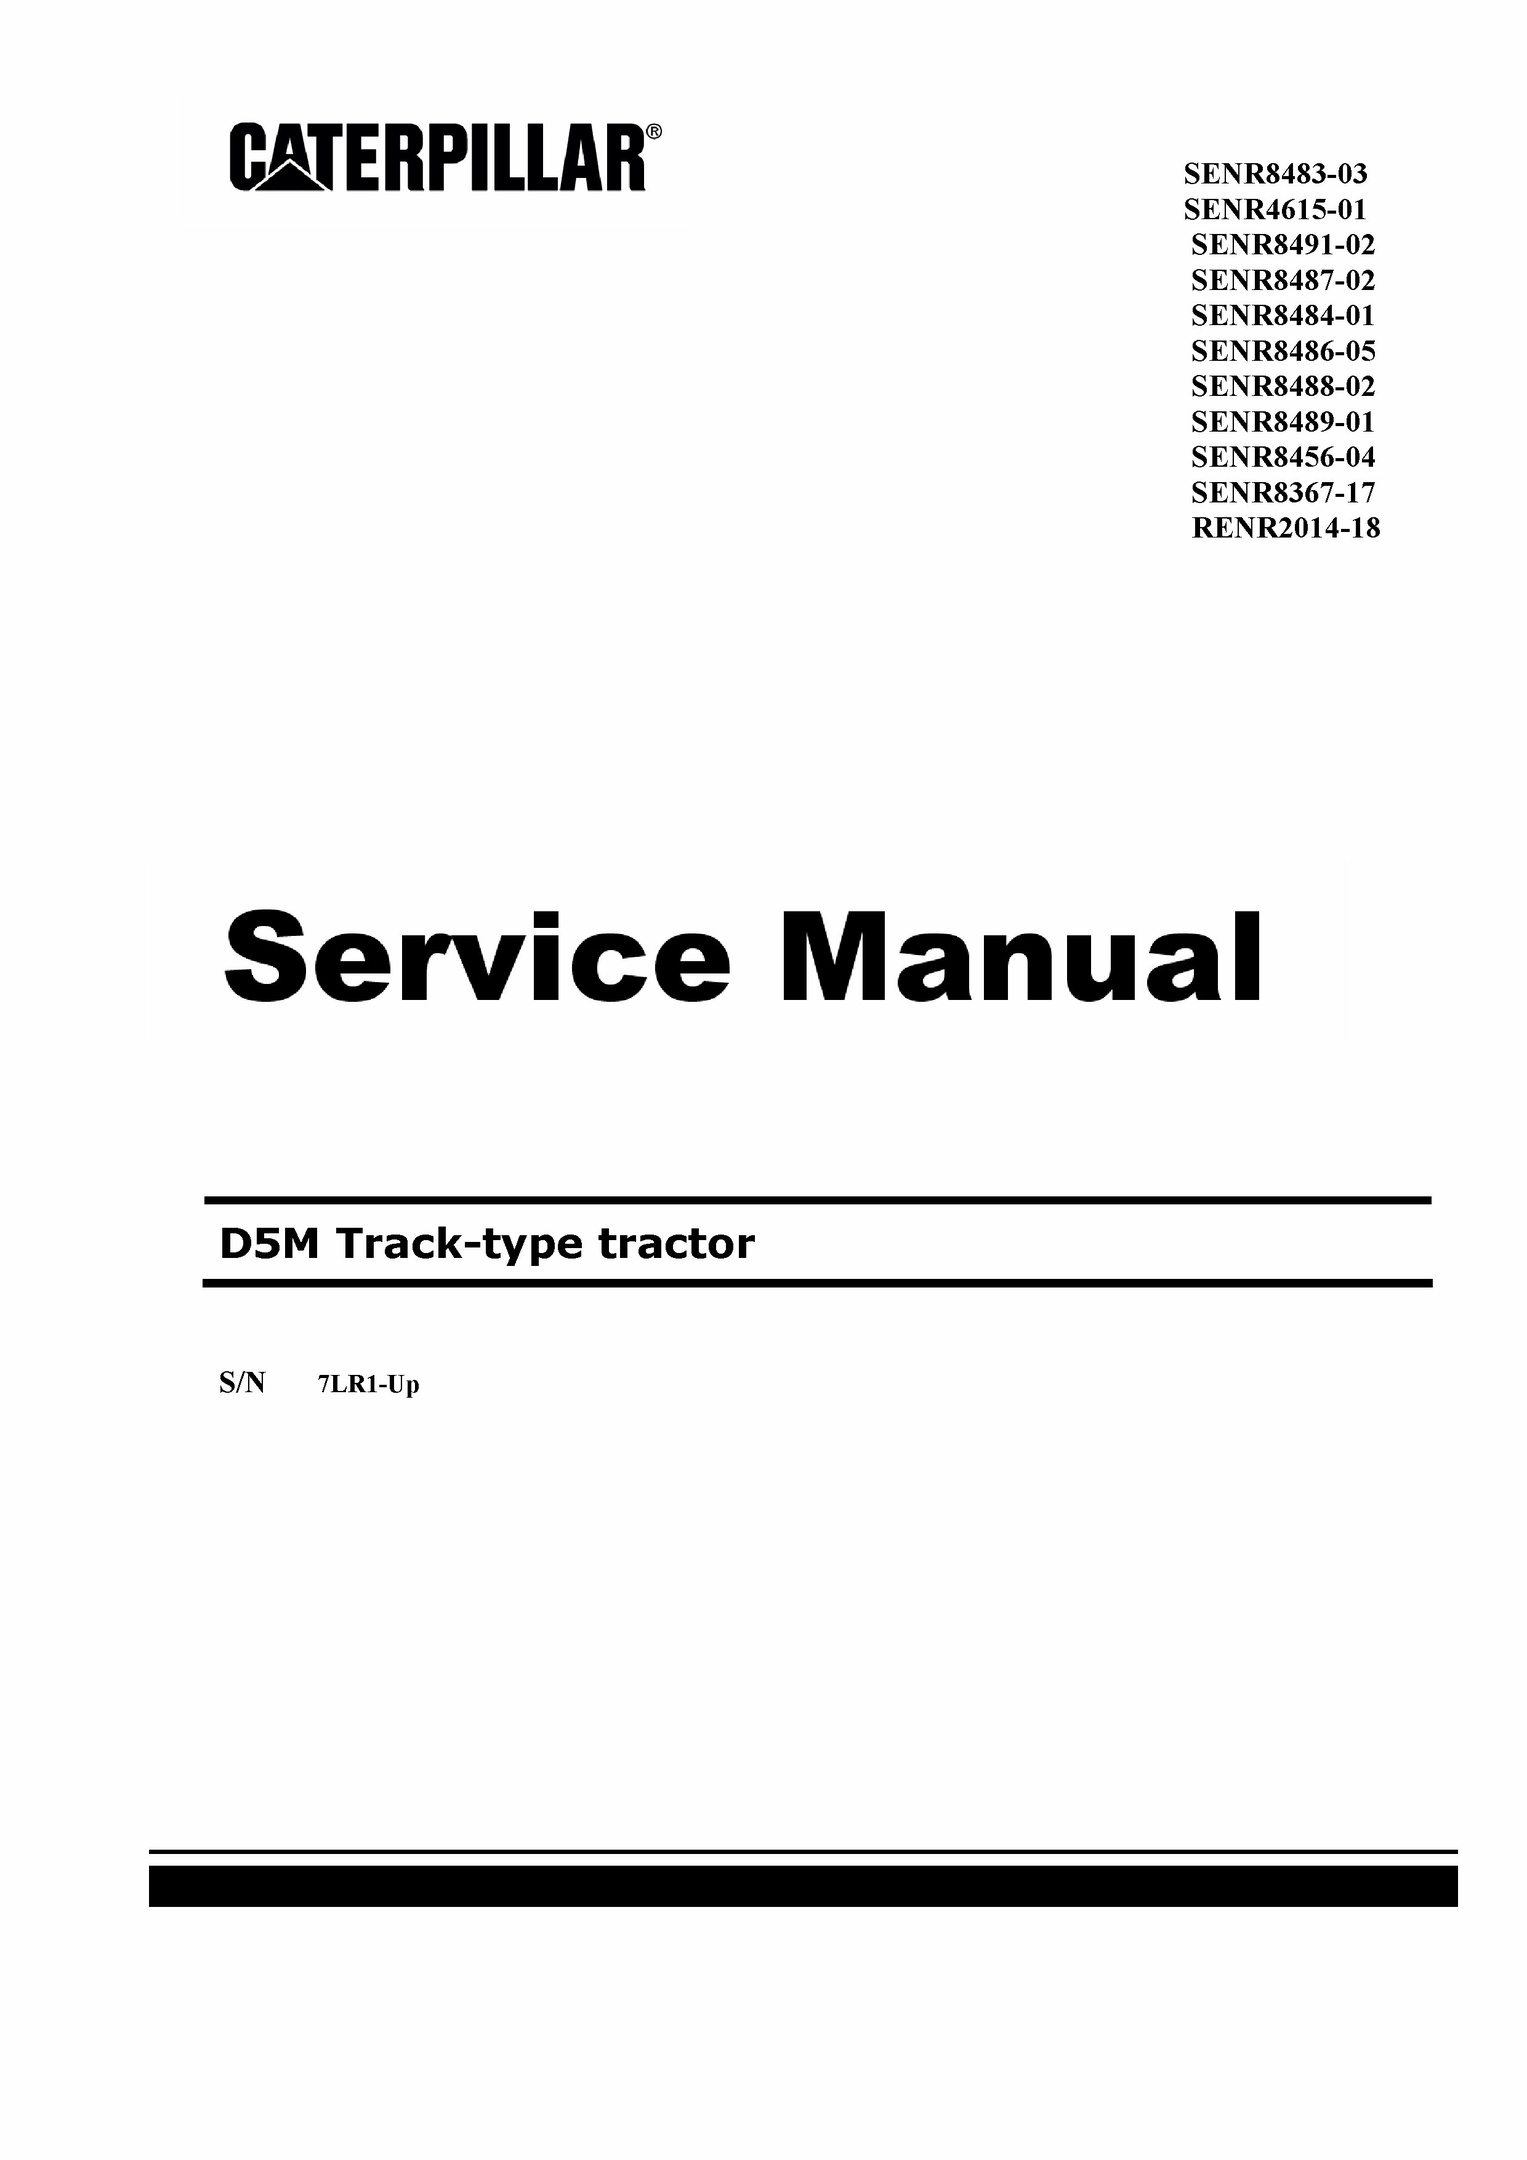 3406 caterpillar service manual rh 3406 caterpillar service manual angelayu us